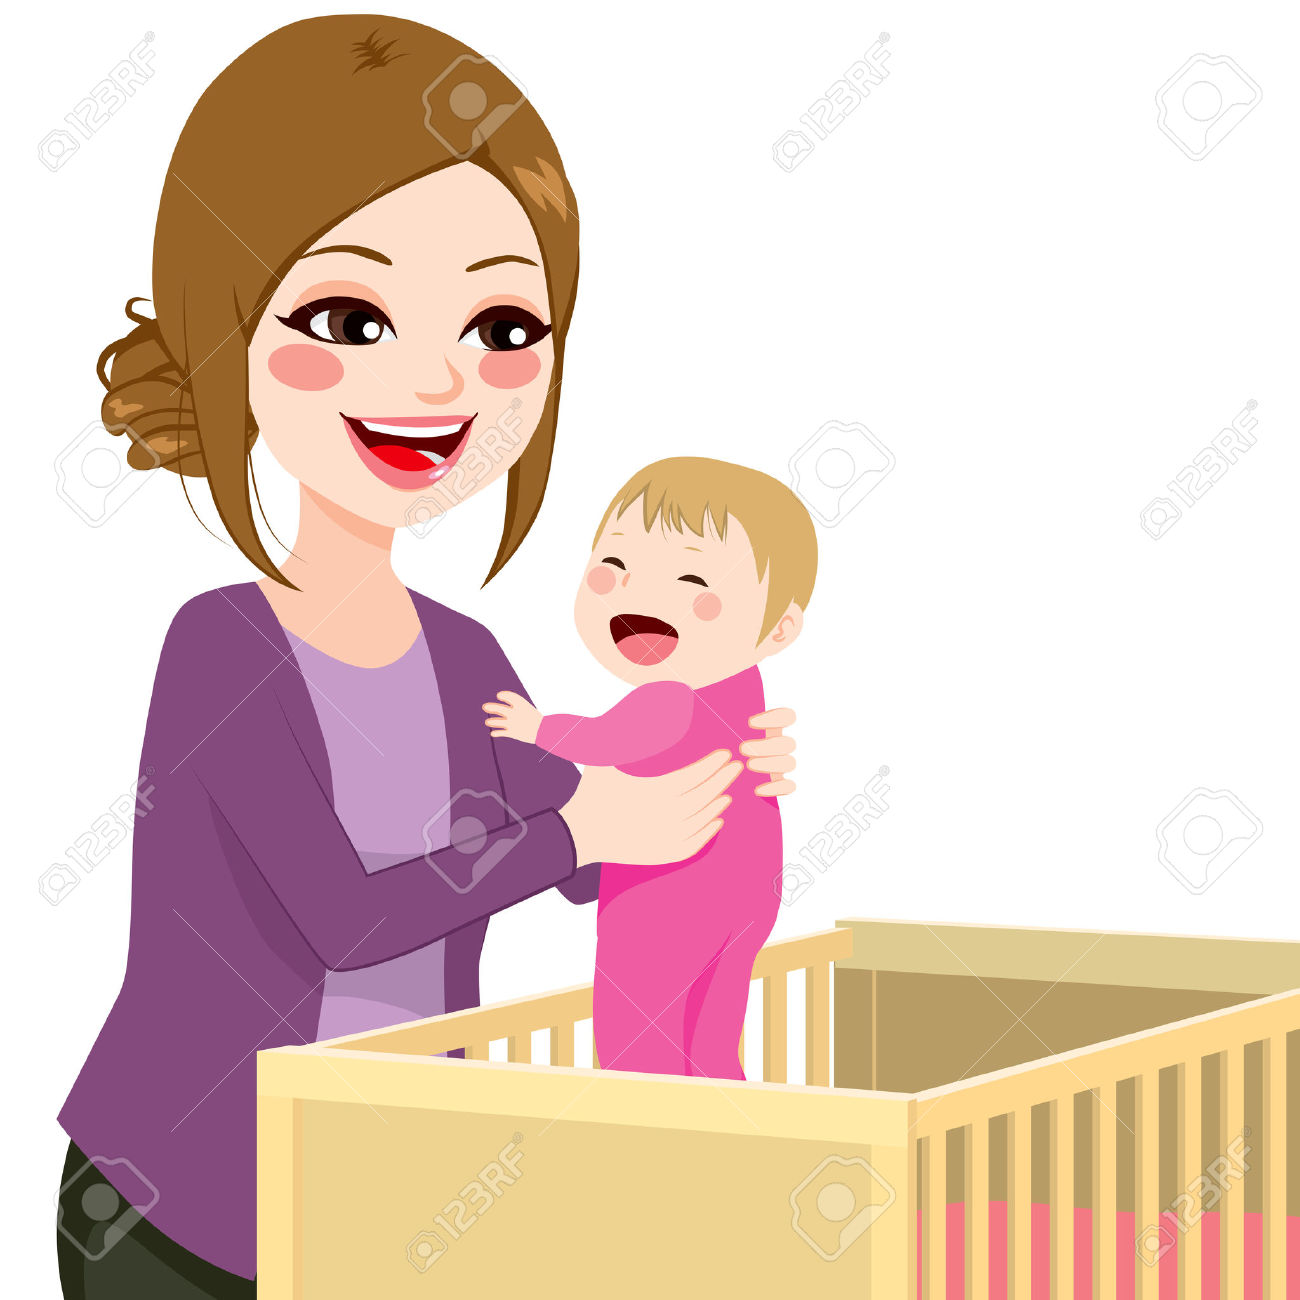 1300x1300 Mother And Baby Cartoon Image Group